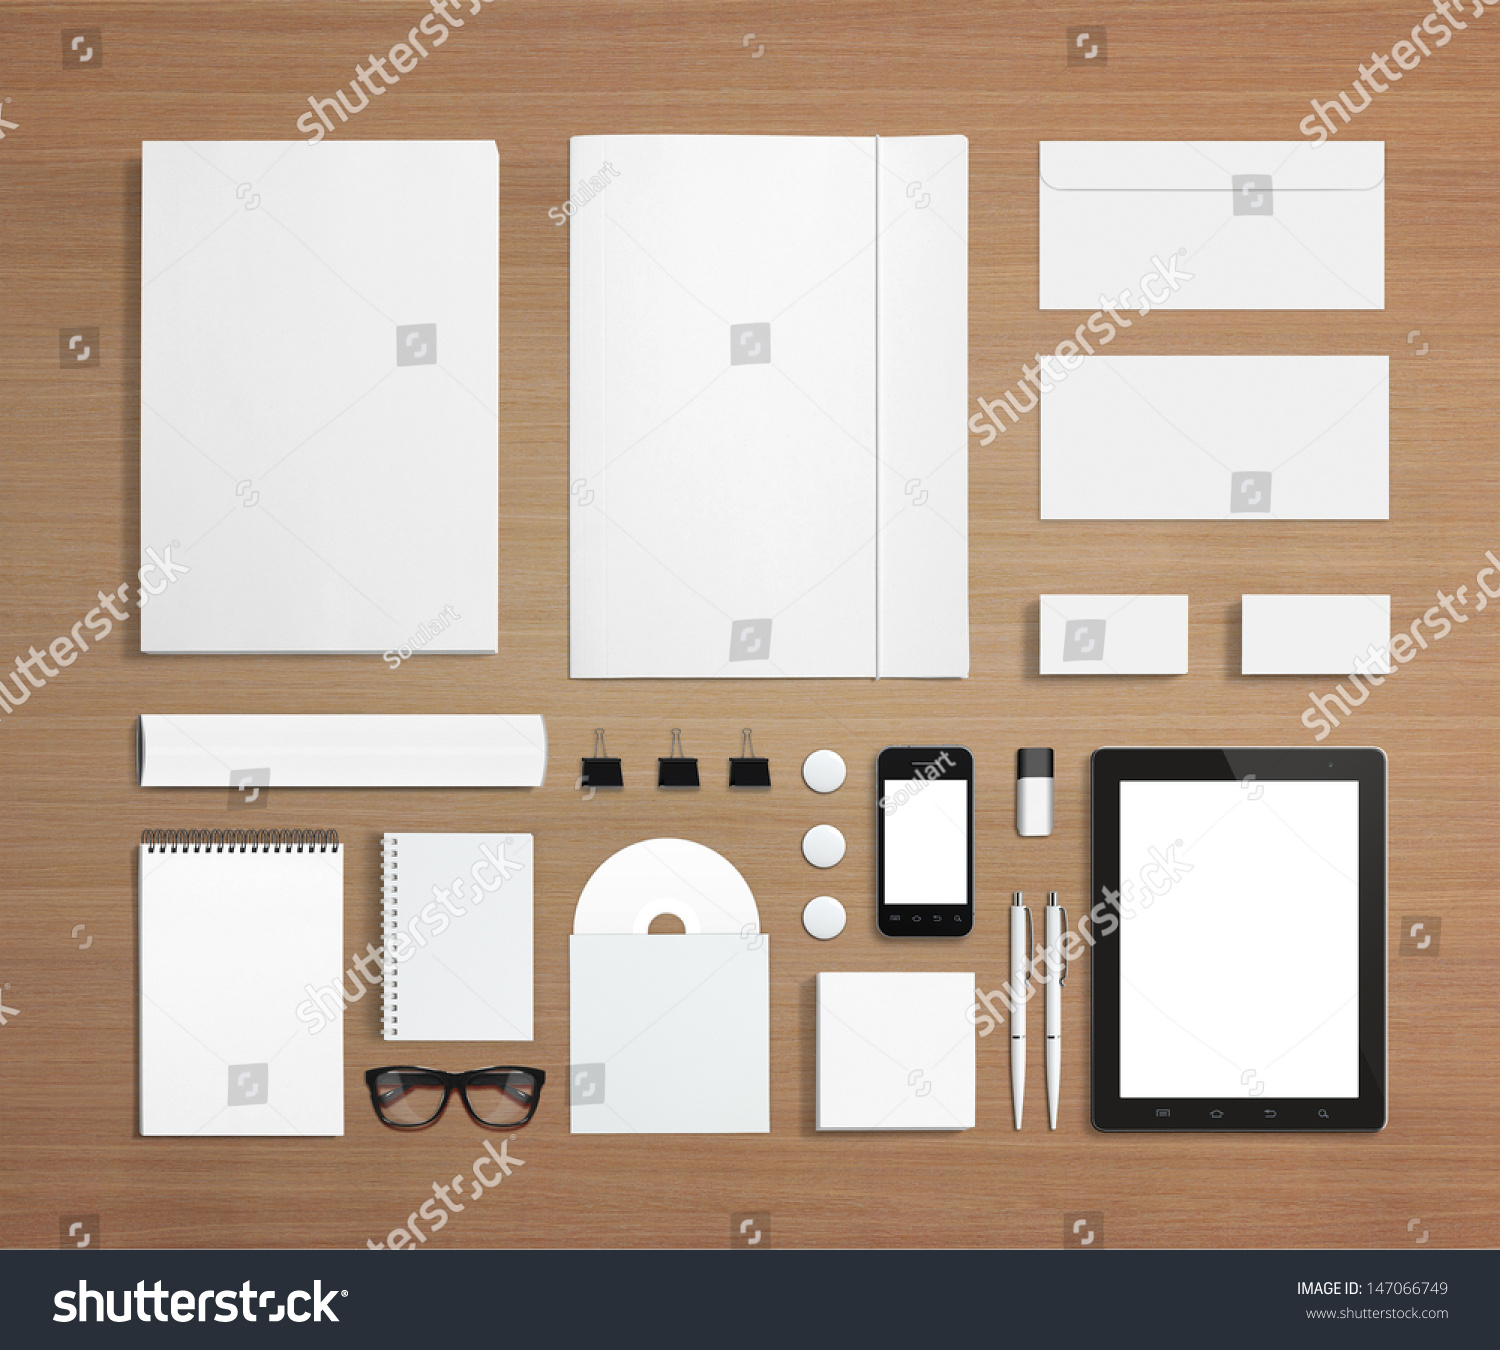 blank stationery corporate id template consist stock illustration